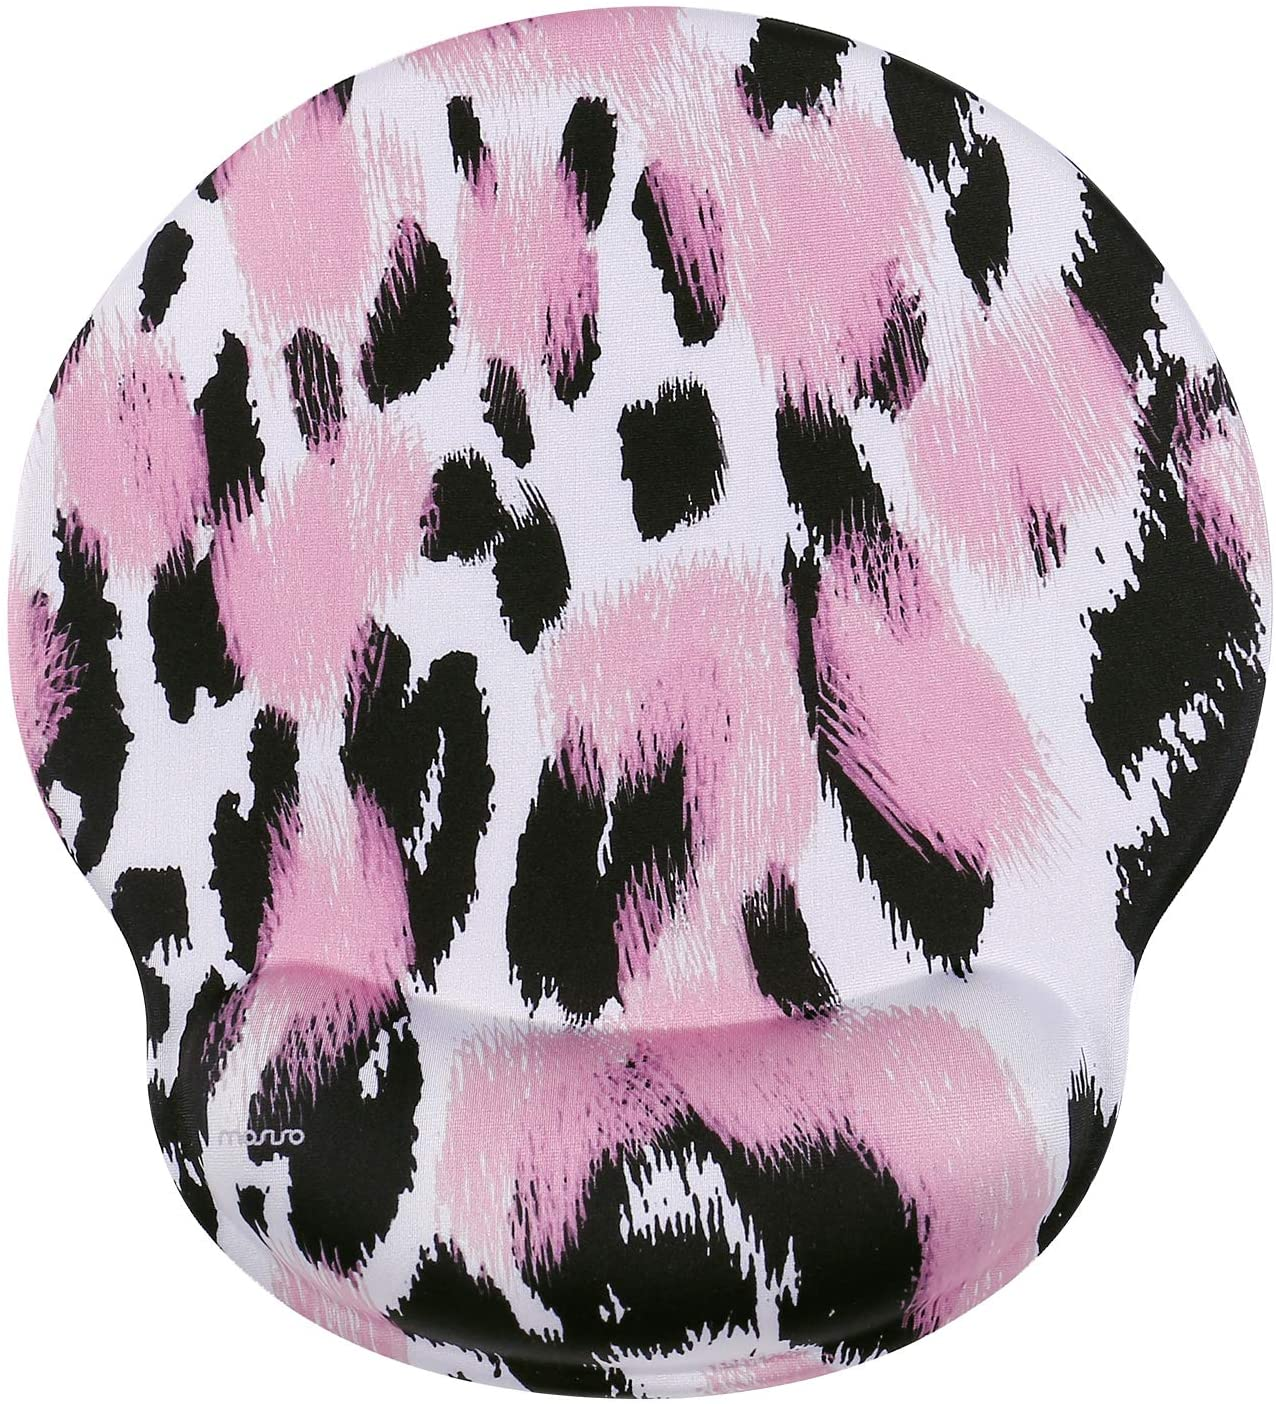 MOSISO Mouse Pad with Wrist Rest, Leopard Print Ergonomic Gaming Mousepad Gel Wrist Rest Support Home/Office/Working Easy Typing Cushion Non-Slip Rubber Base for Computer Laptop, Pink